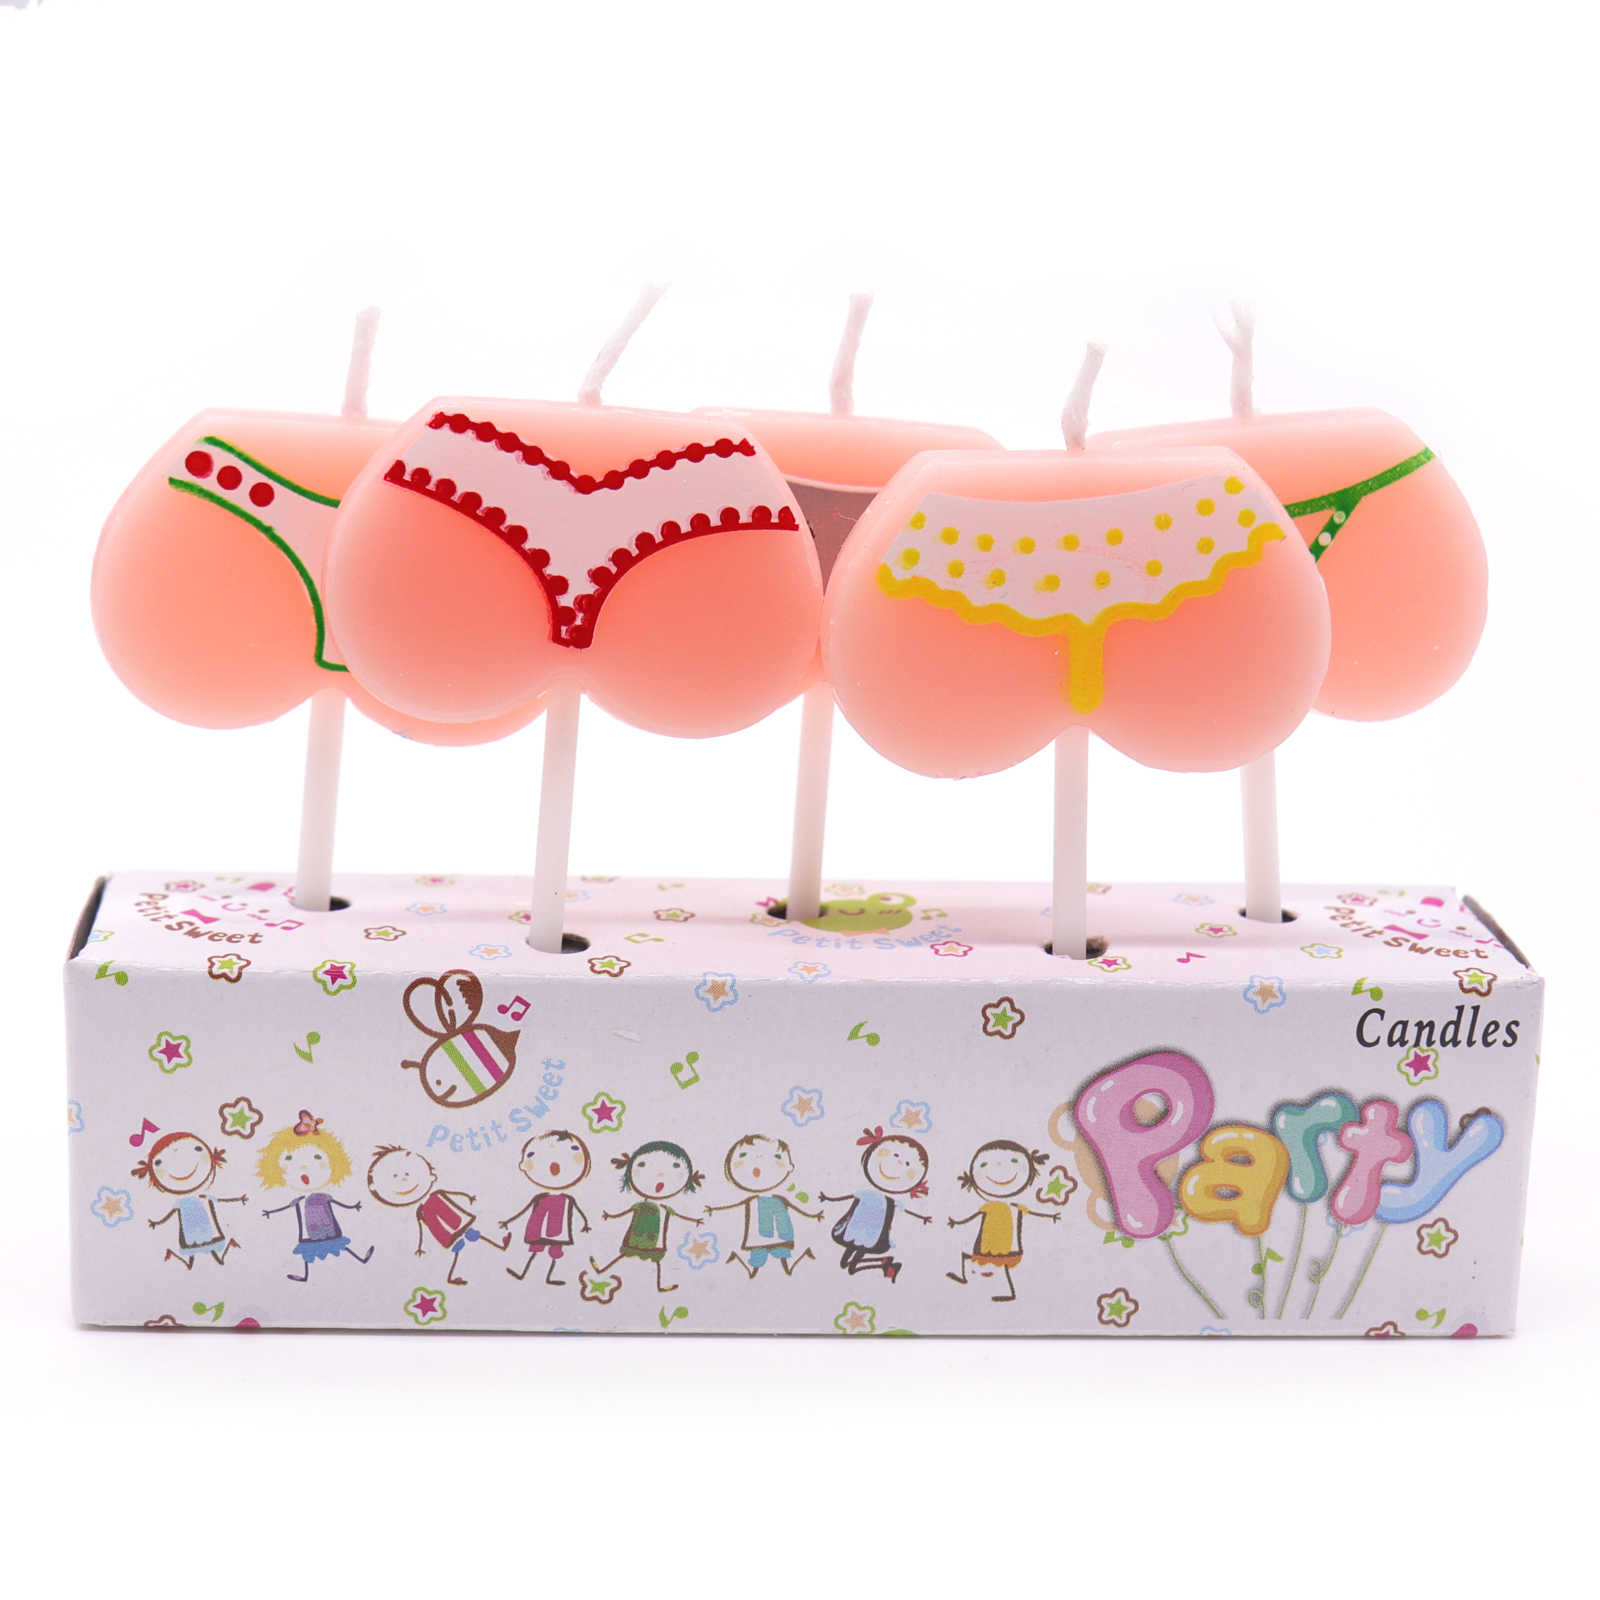 Penis Dick Hens Night Party Straws Toys Headband Cups Cutlery Balloon Candles